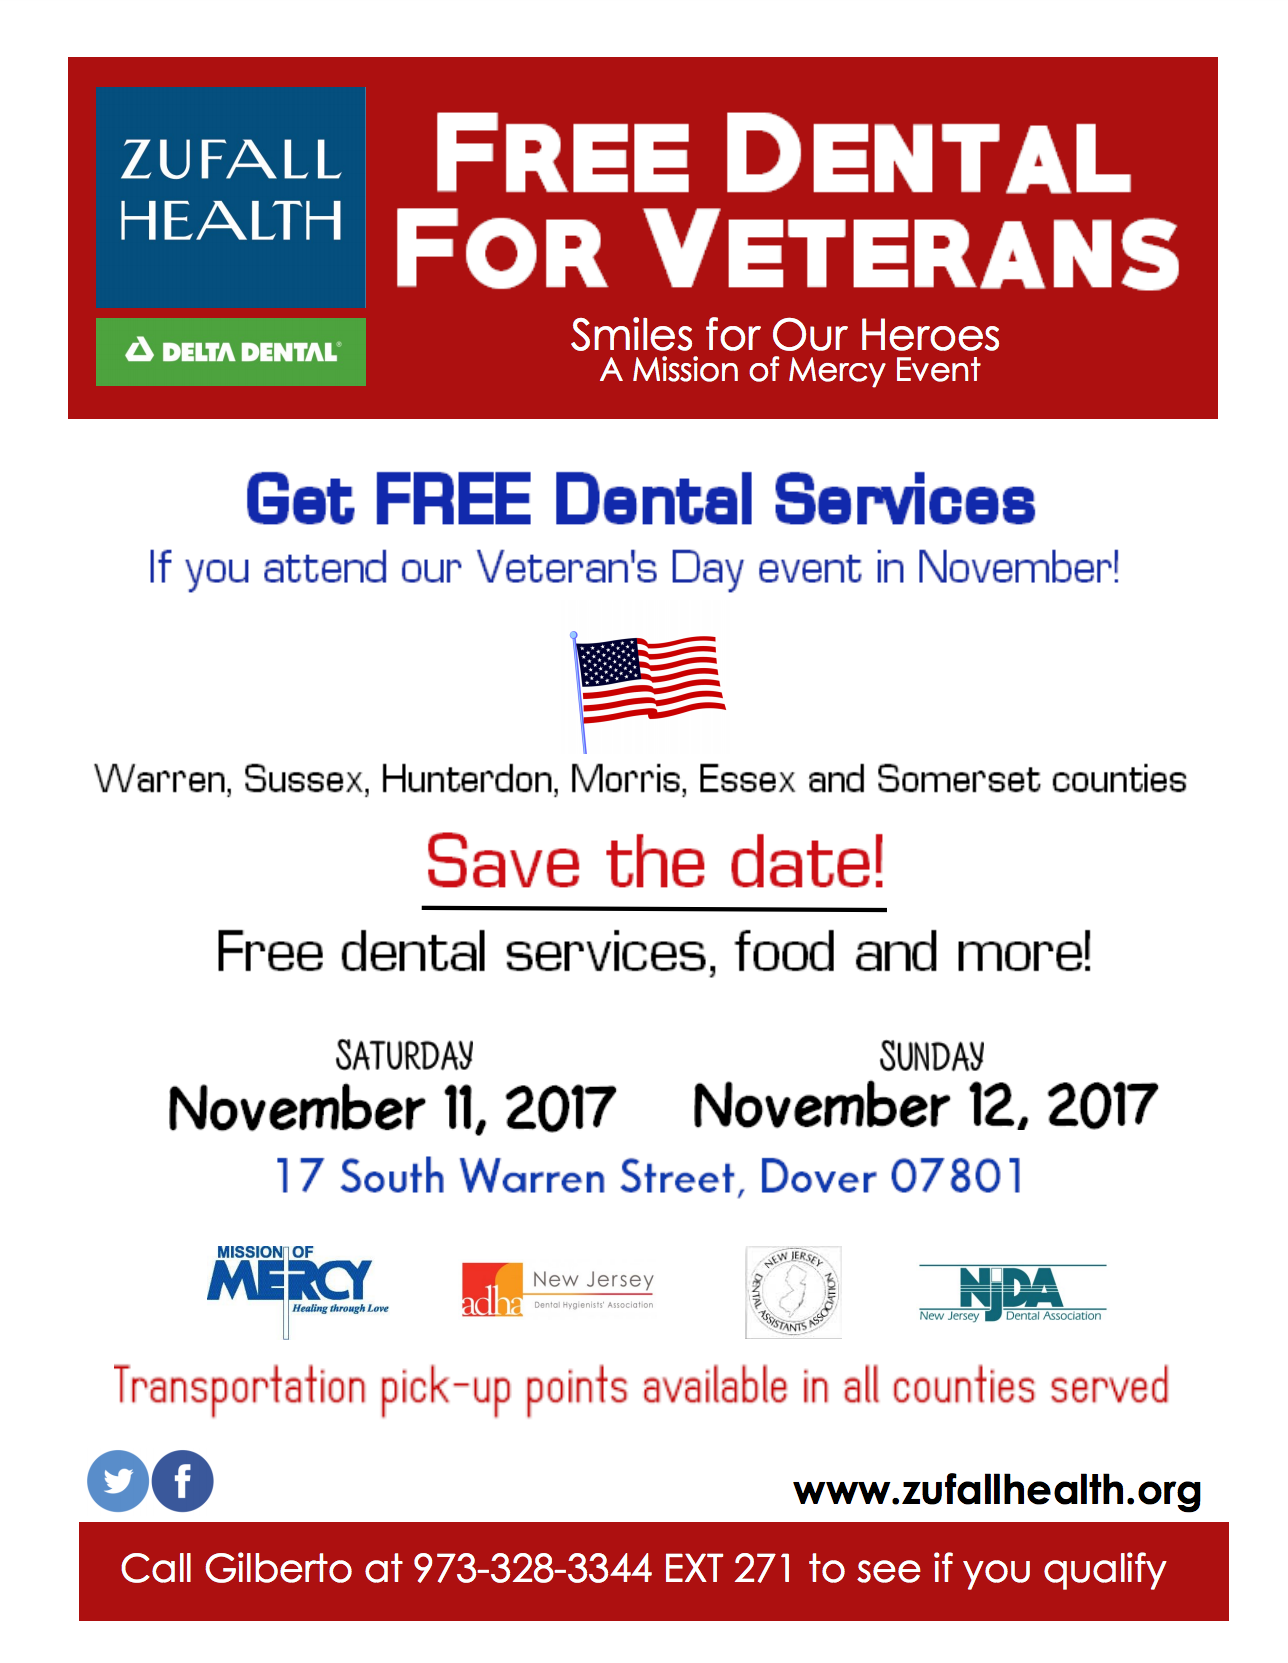 Free dental care for vets